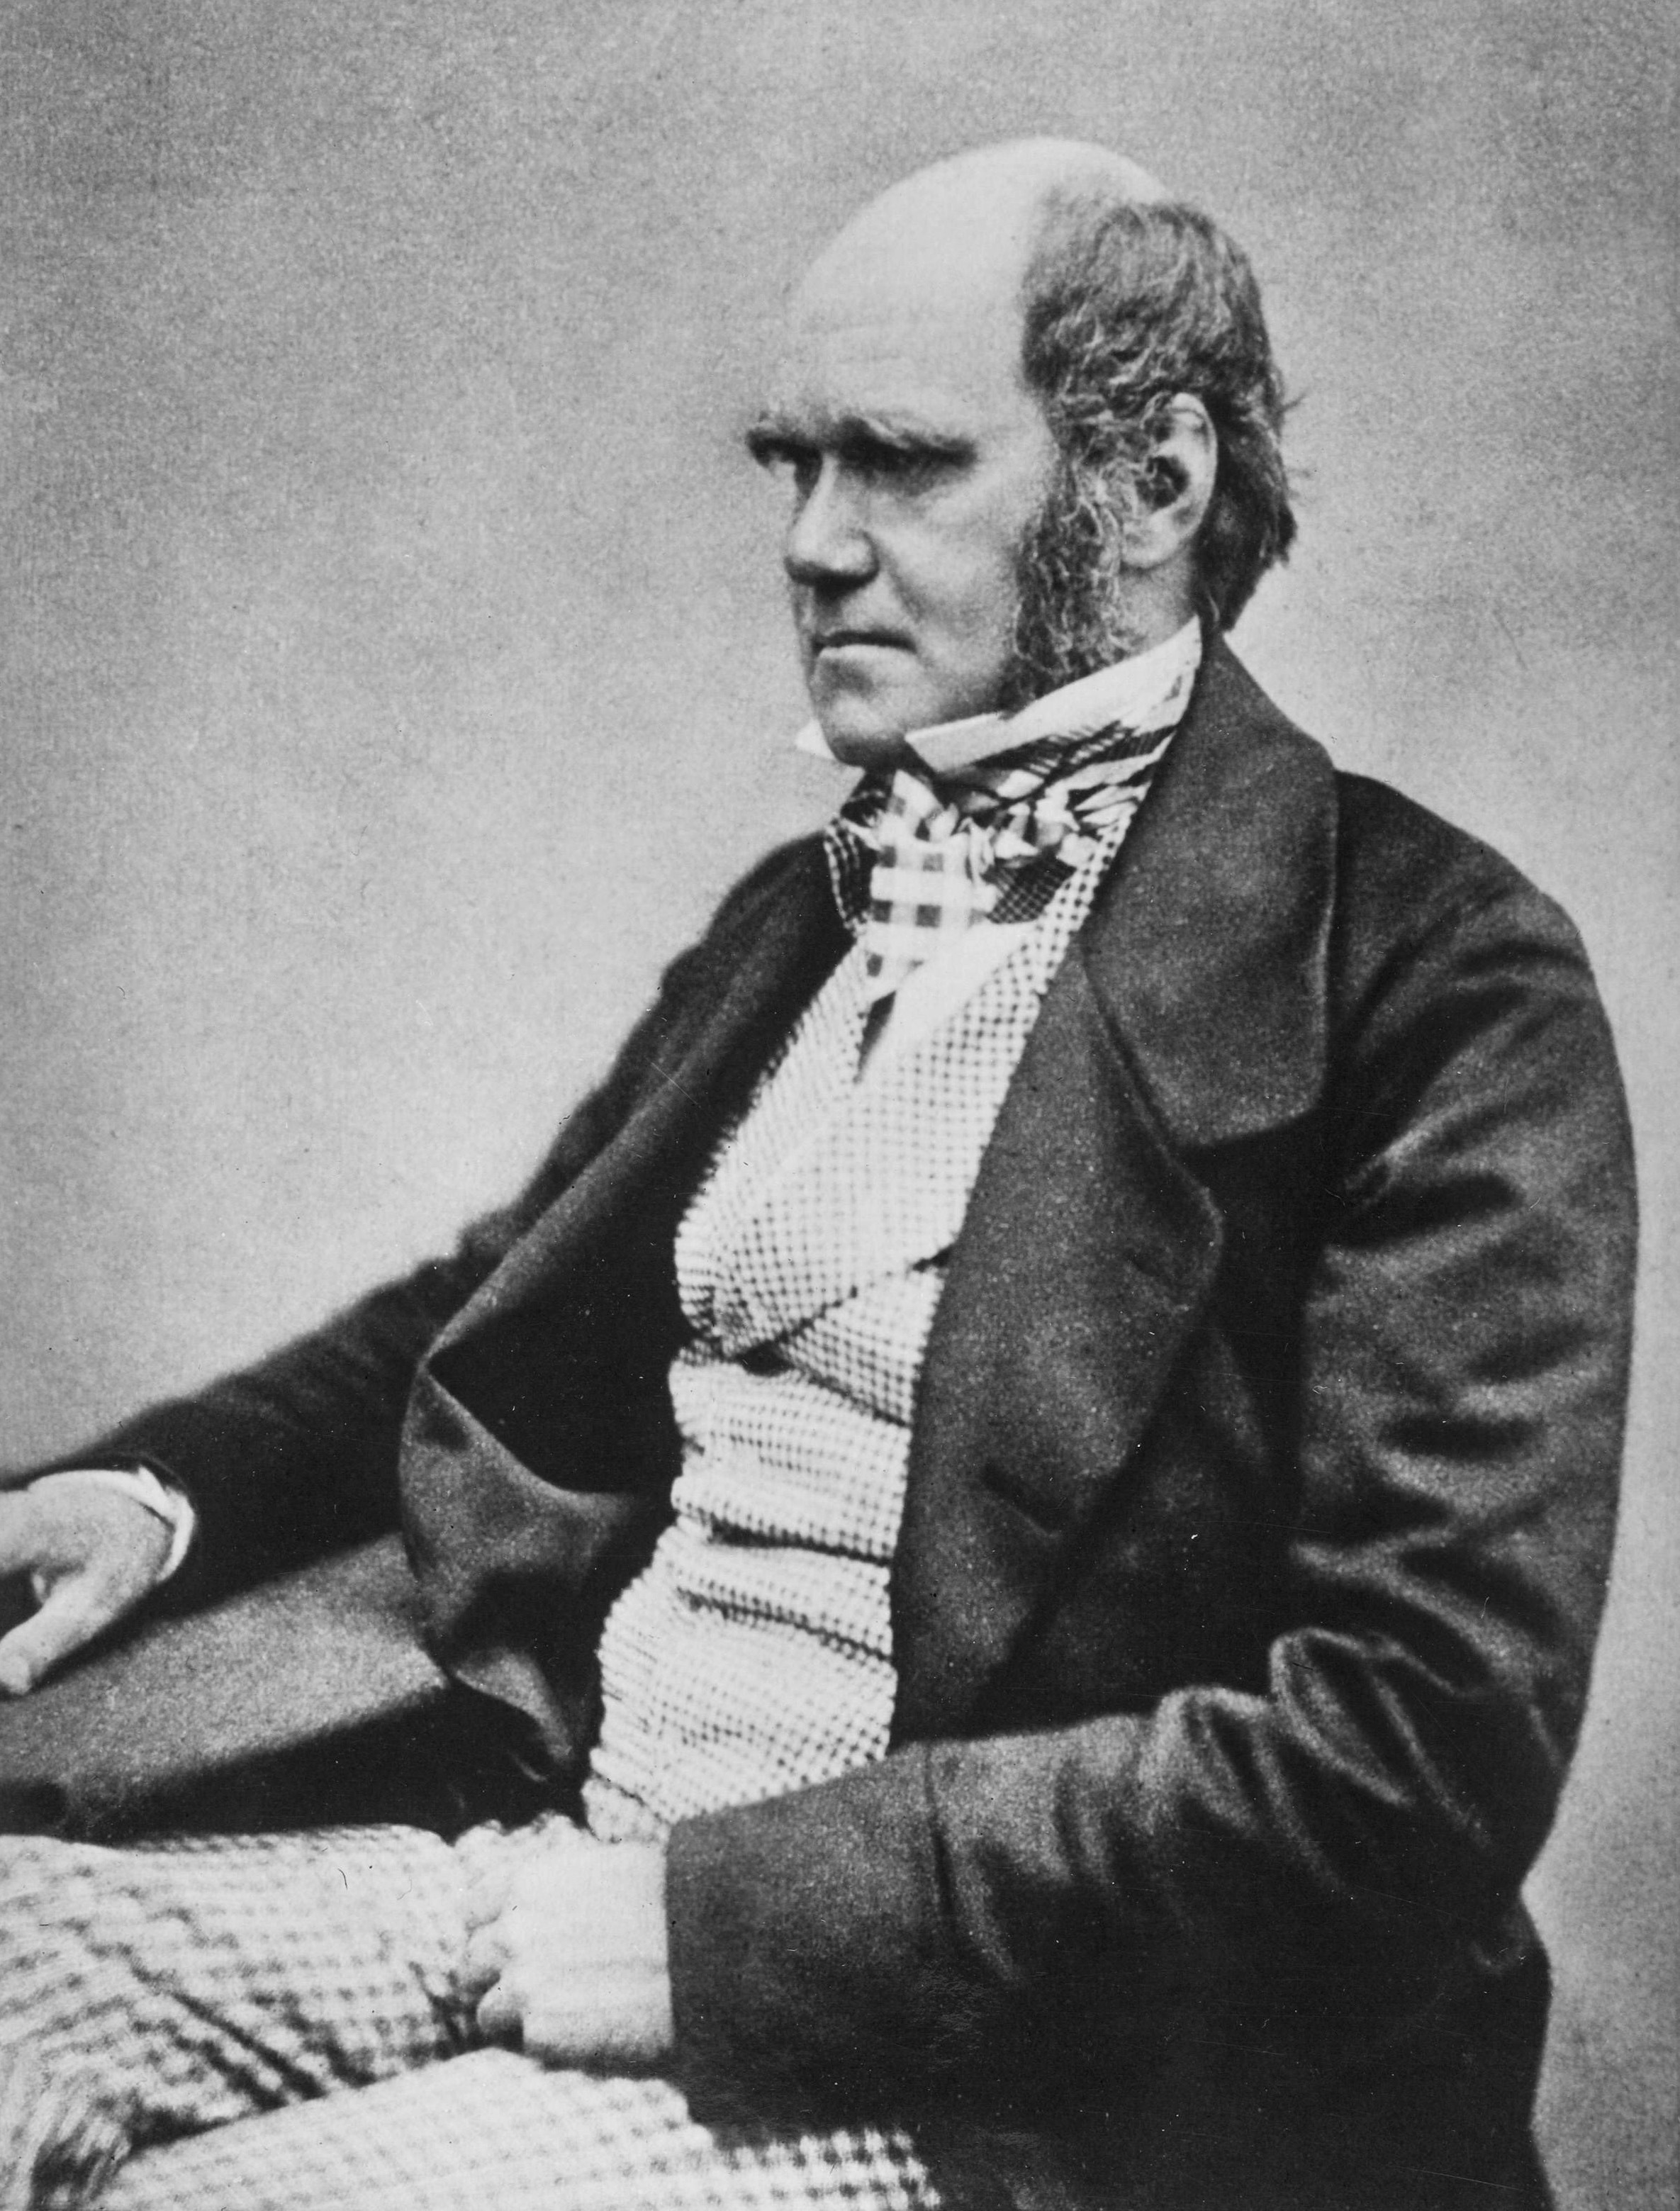 Charles Darwin, photographed by Henry Maull and John Fox, circa 1854 when he was preparing On the Origin of Species for publication. Used as the frontispiece for Francis Darwin's The Life and Letters of Charles Darwin (1887) which has the caption